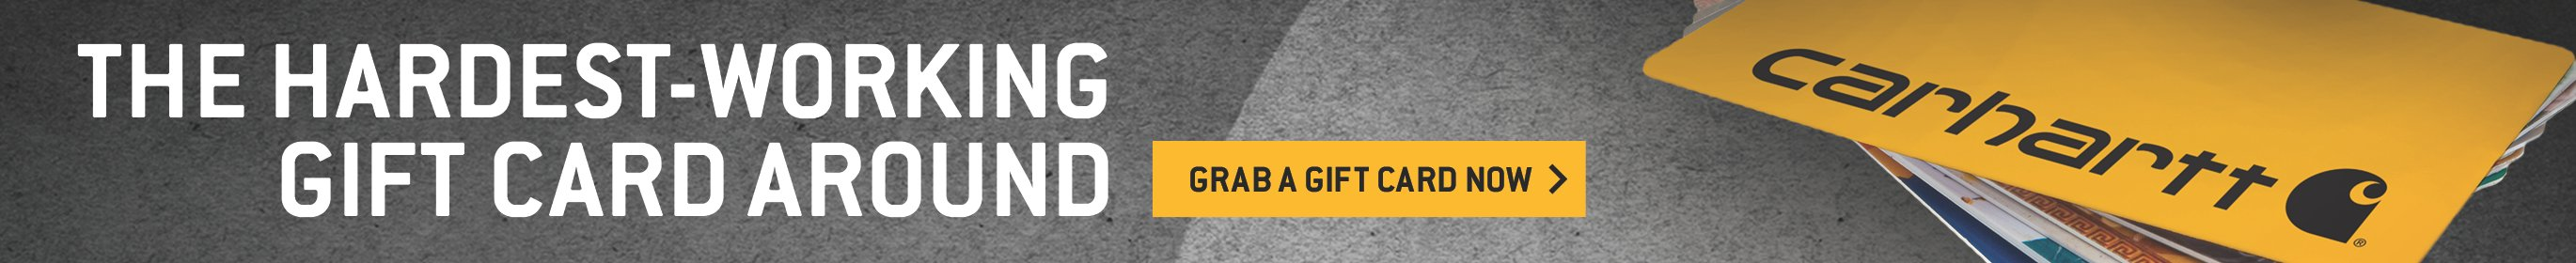 The Hardest-working Gift Card Around | Grab A Gift Card Now